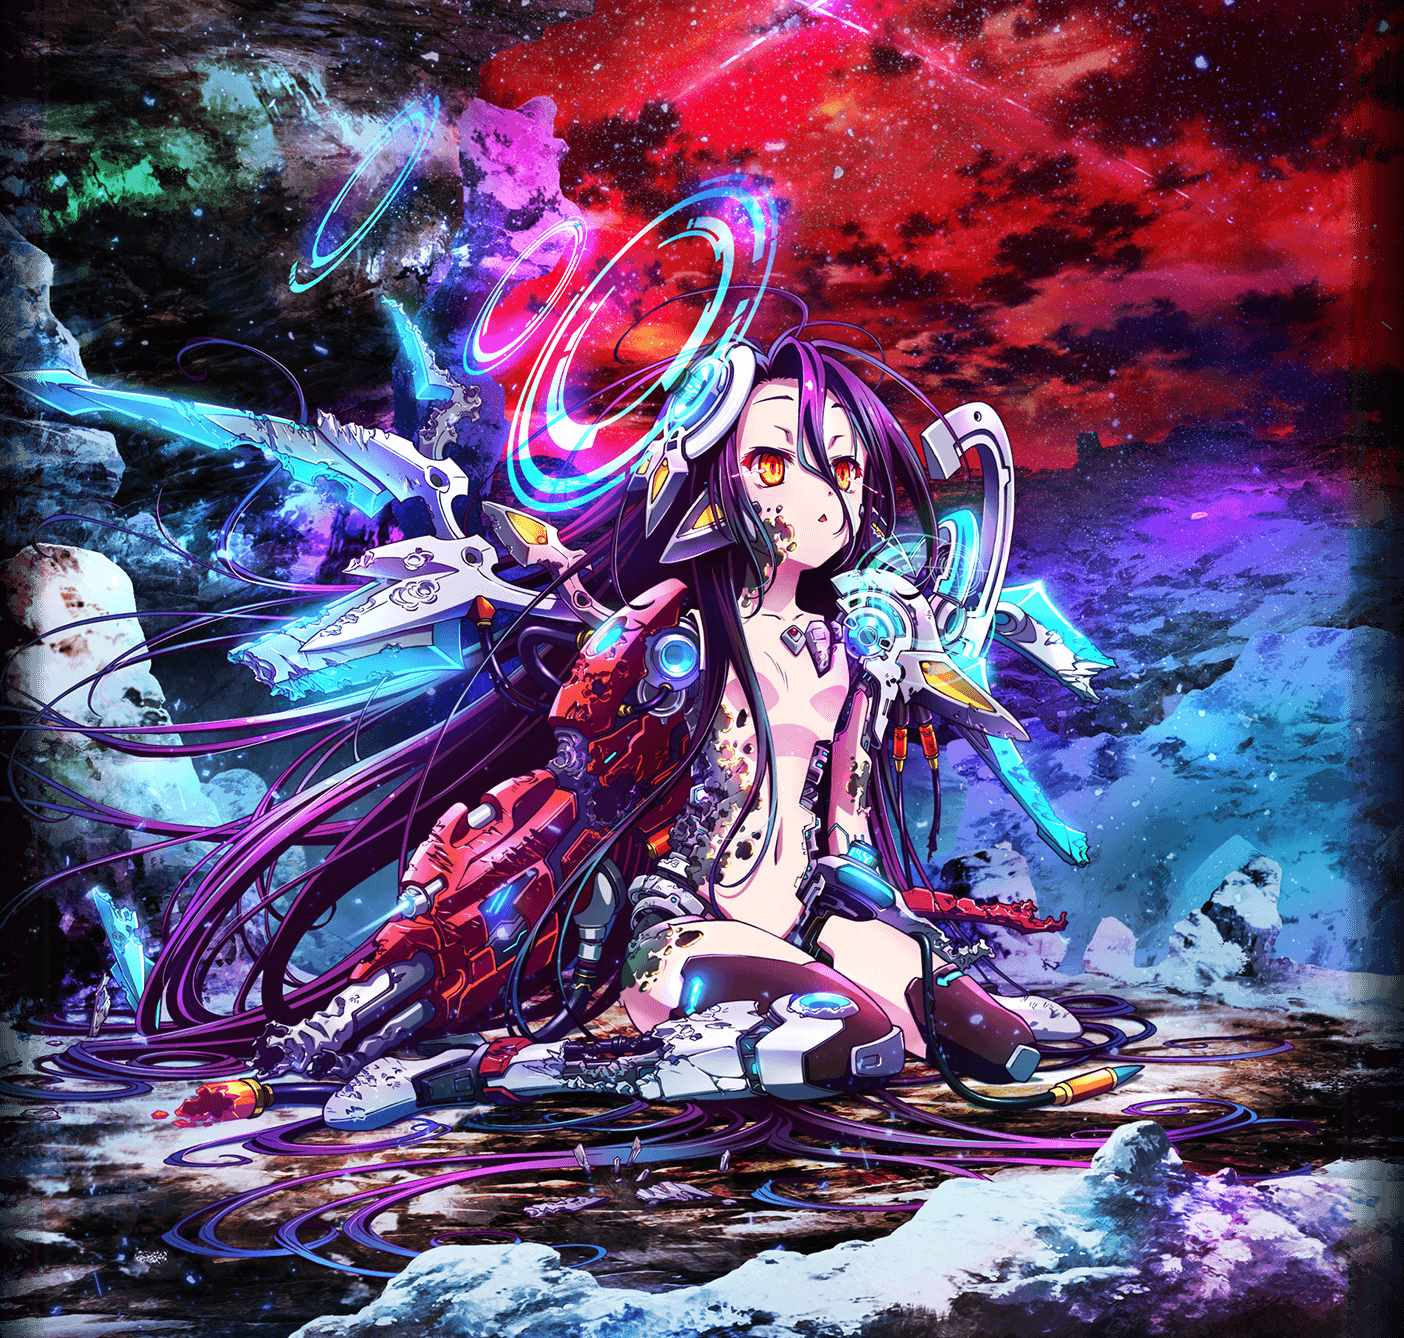 No Game No Life anime review movie poster